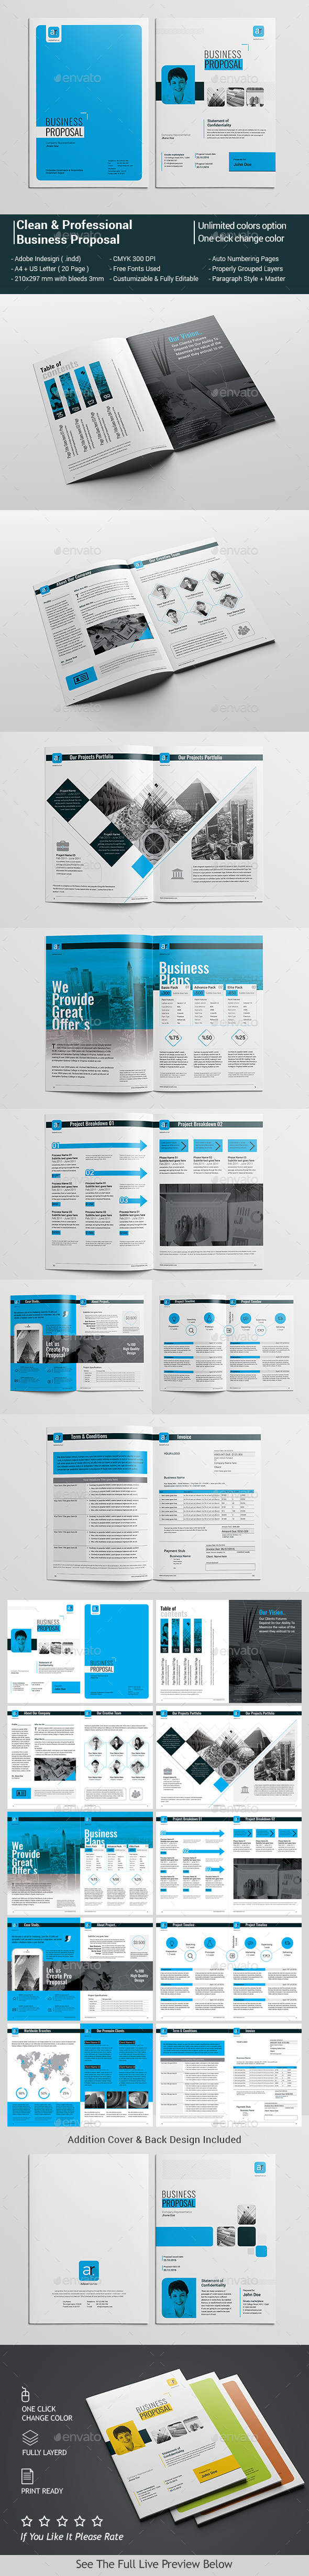 clean professional business proposal template indesign indd design download http. Black Bedroom Furniture Sets. Home Design Ideas